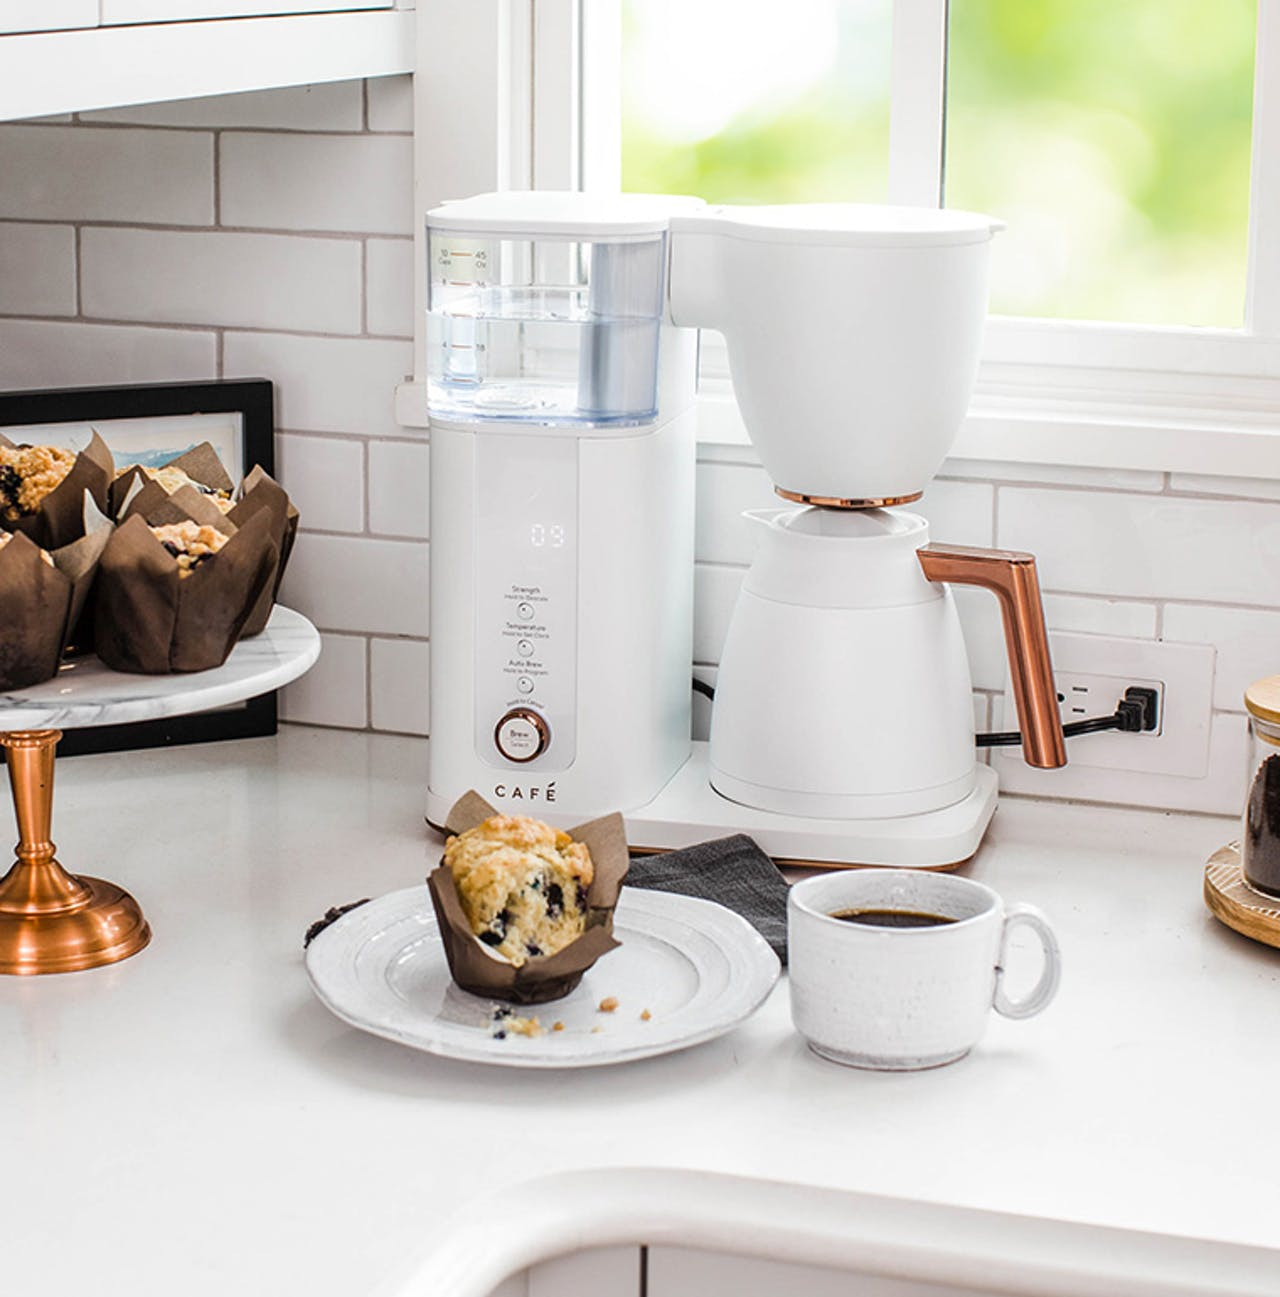 Cafe matte white coffee maker with muffin